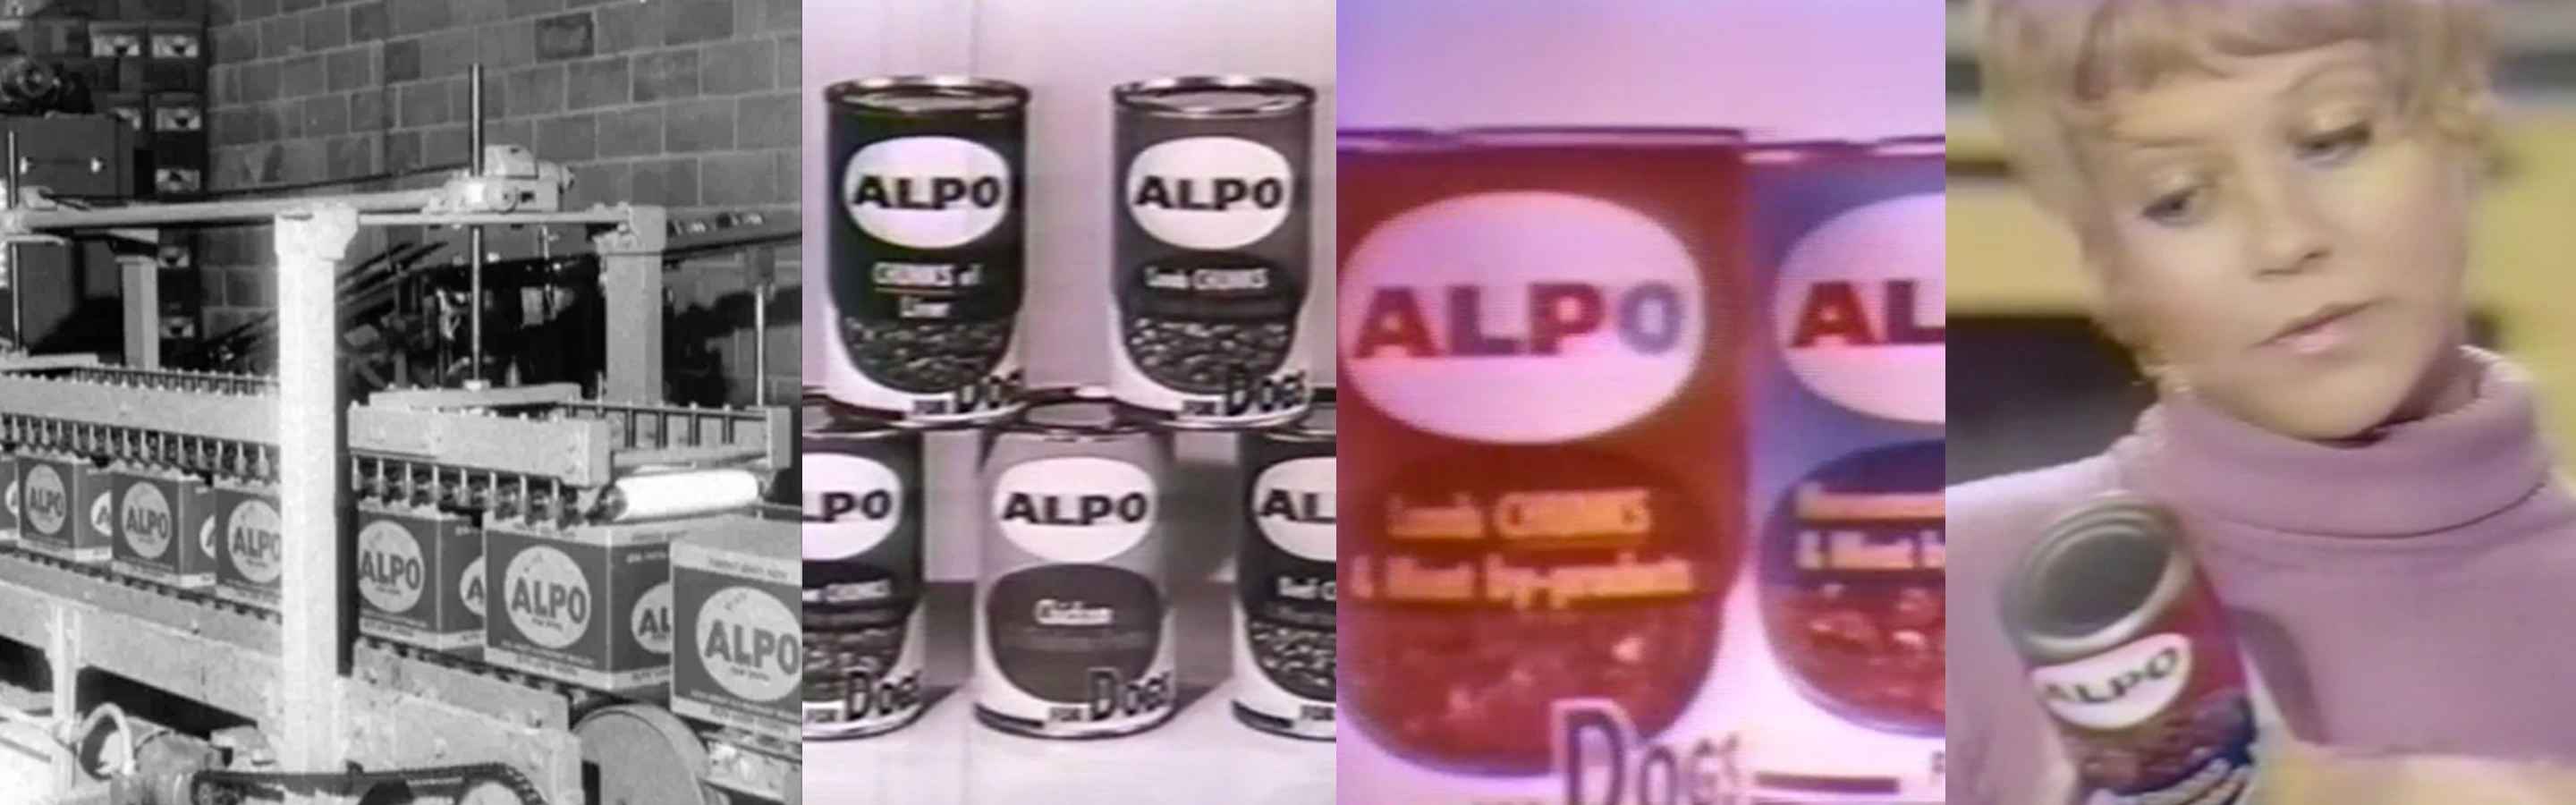 Alpo-Dog-Food-Cans